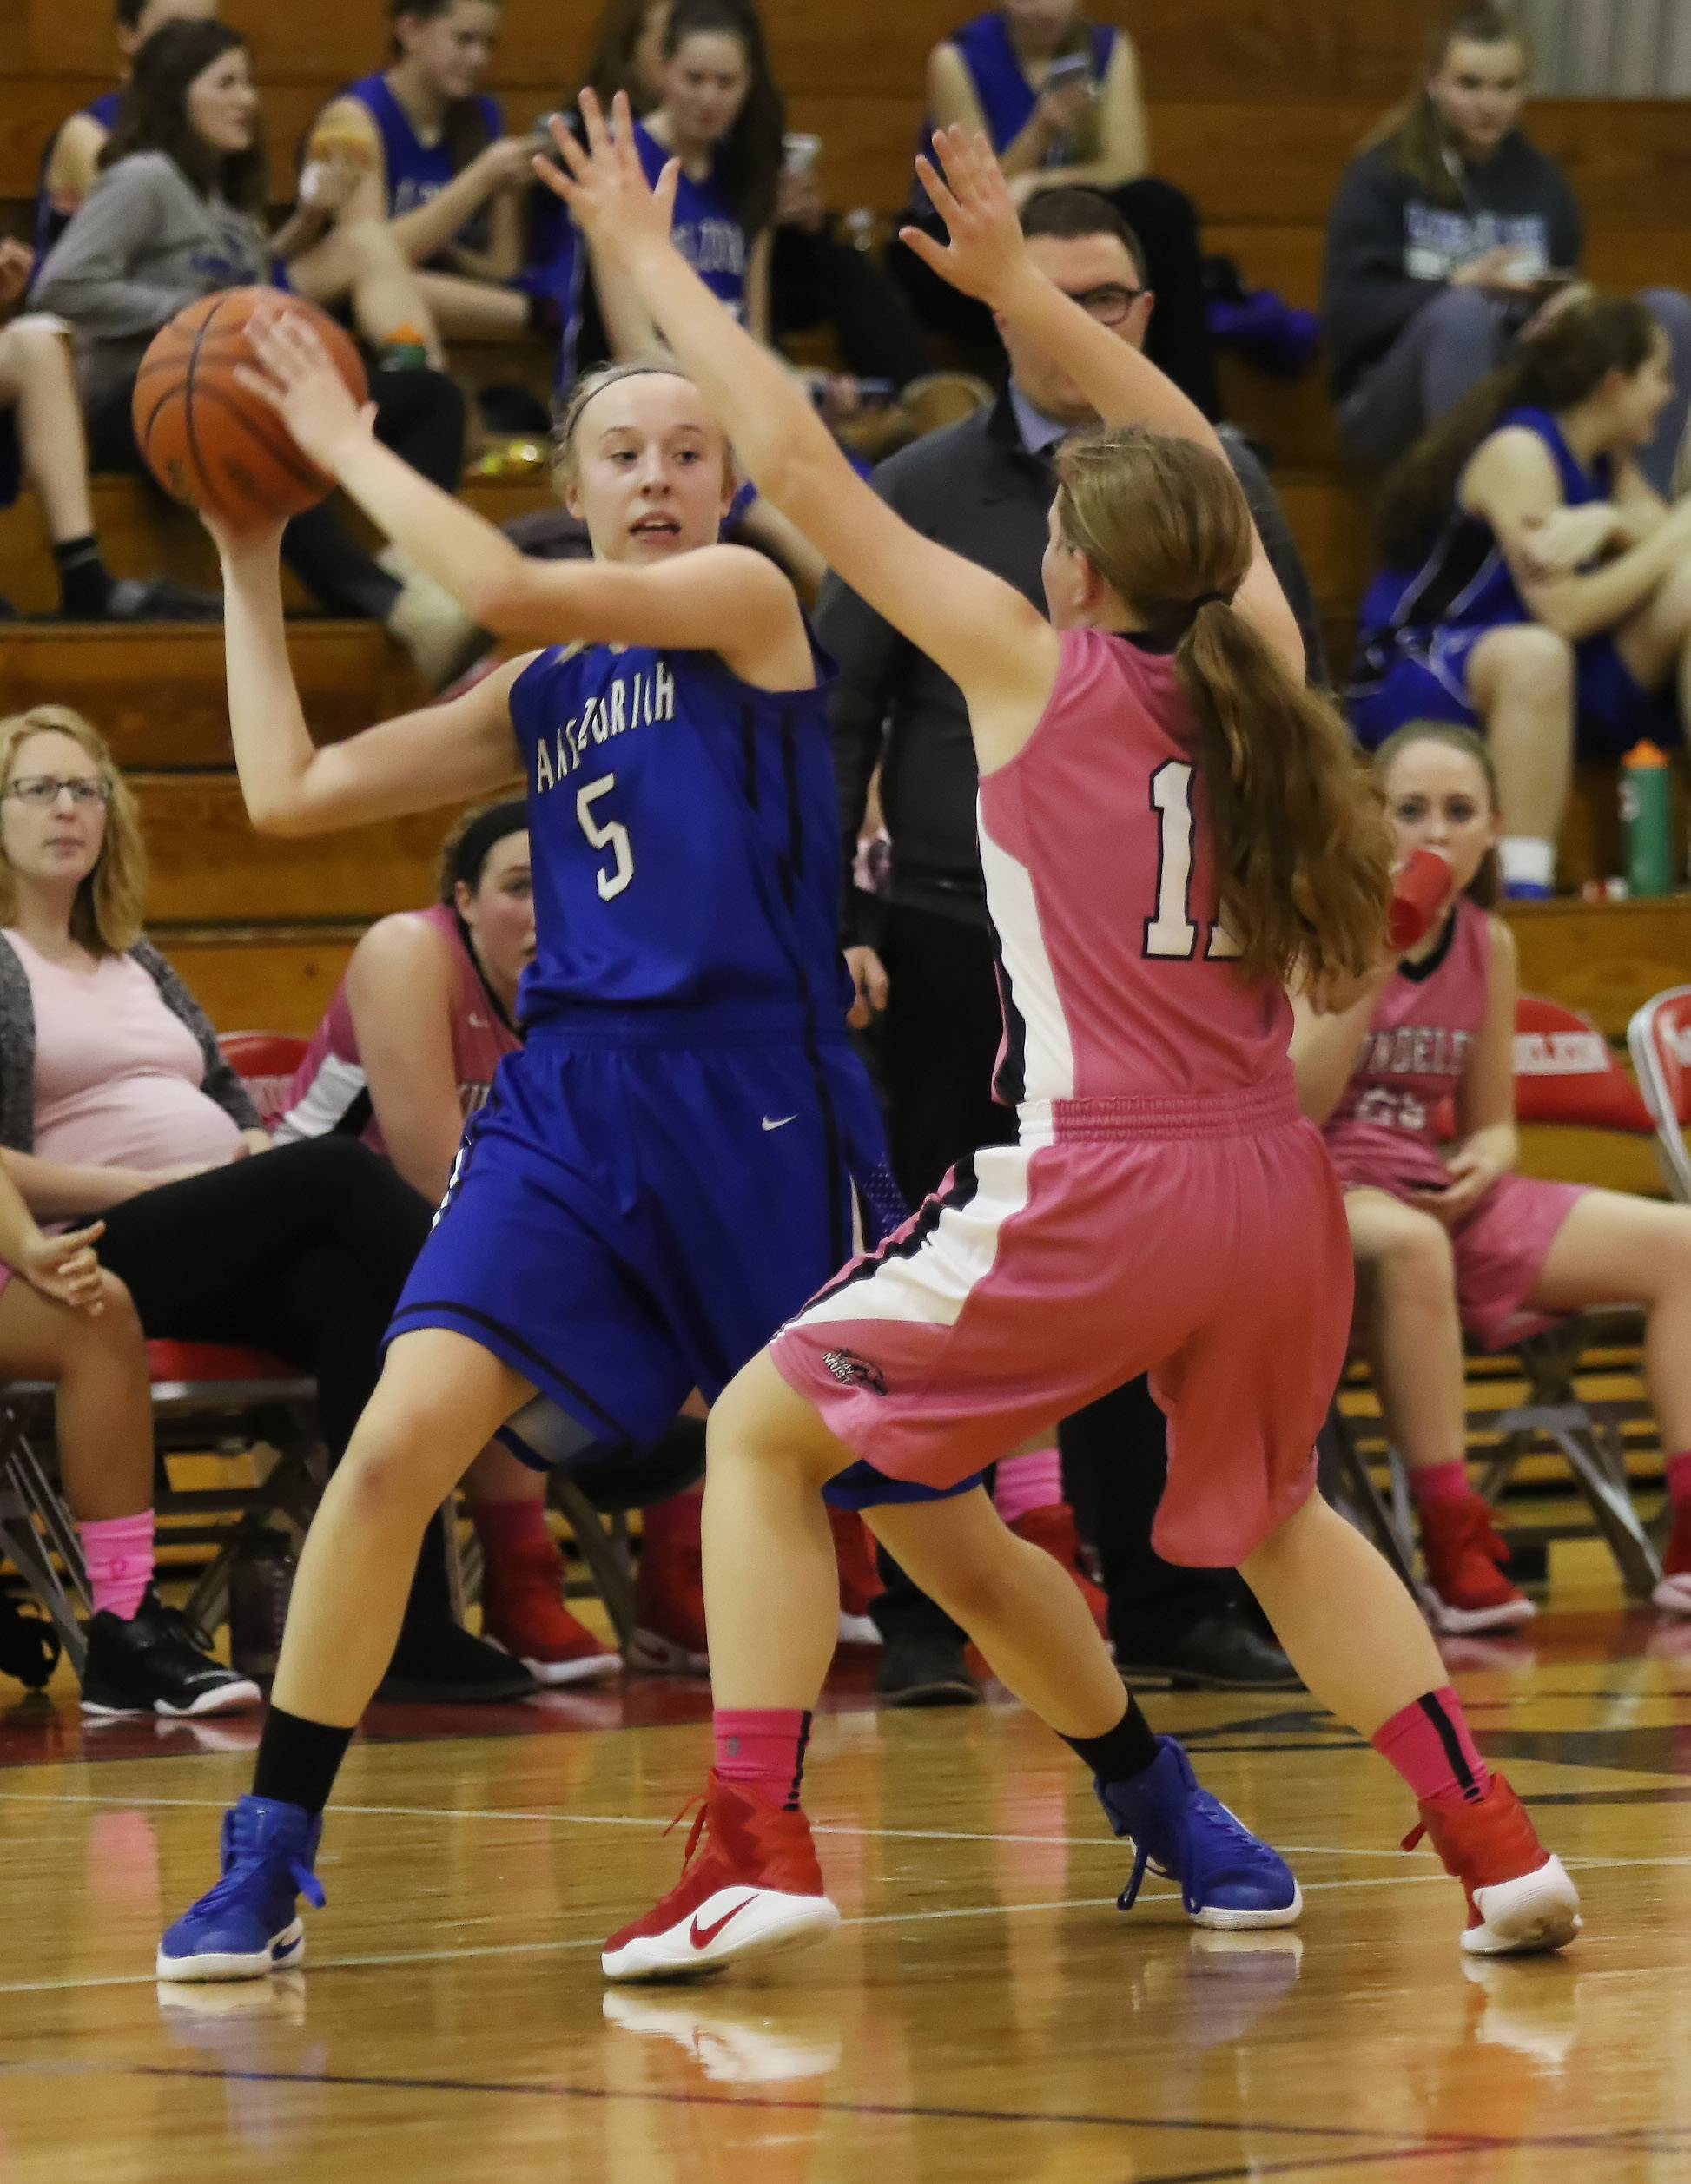 Lake Zurich guard Ella Gilbertson passes the ball during the girls high school basketball game between Lake Zurich vs. Mundelein at Mundelein High School on Thursday.